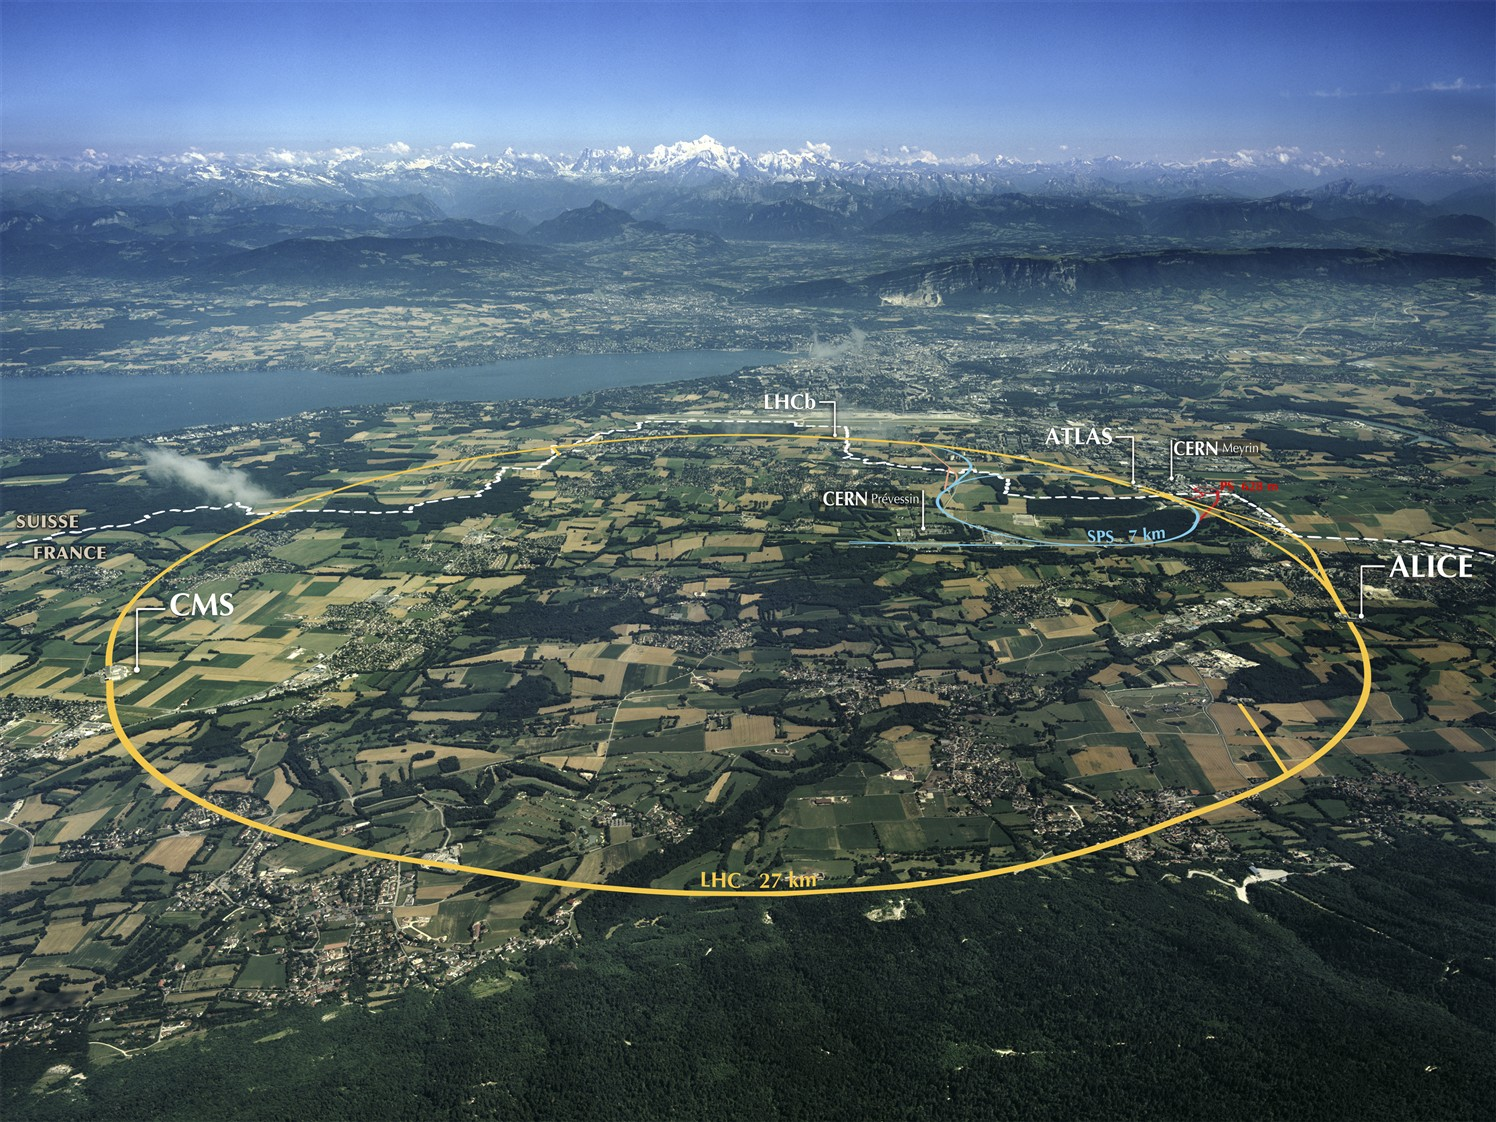 A 2008 aerial image of the LHC site, which straddles the border between France and Switzerland, with major LHC and CERN installations outlined and labeled.CERN